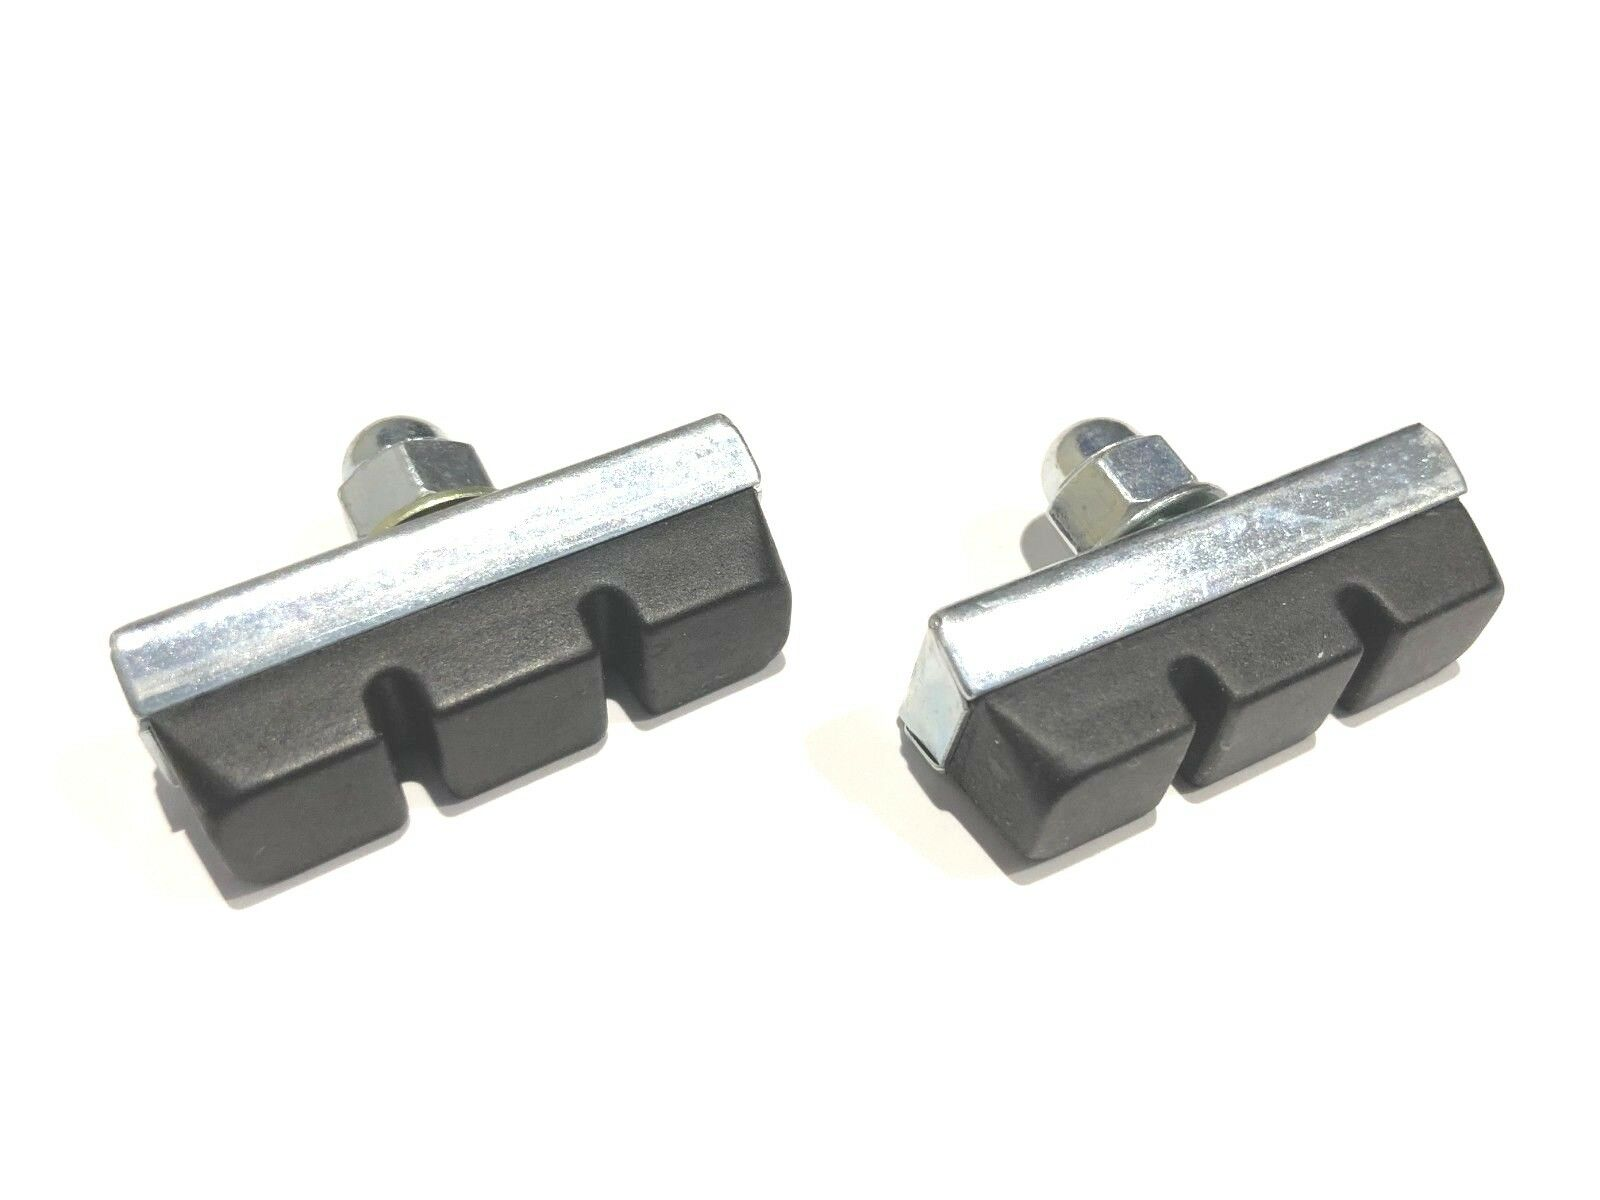 WHITE PAIR Dia-Compe reissue threaded brake pads old school BMX bicycle